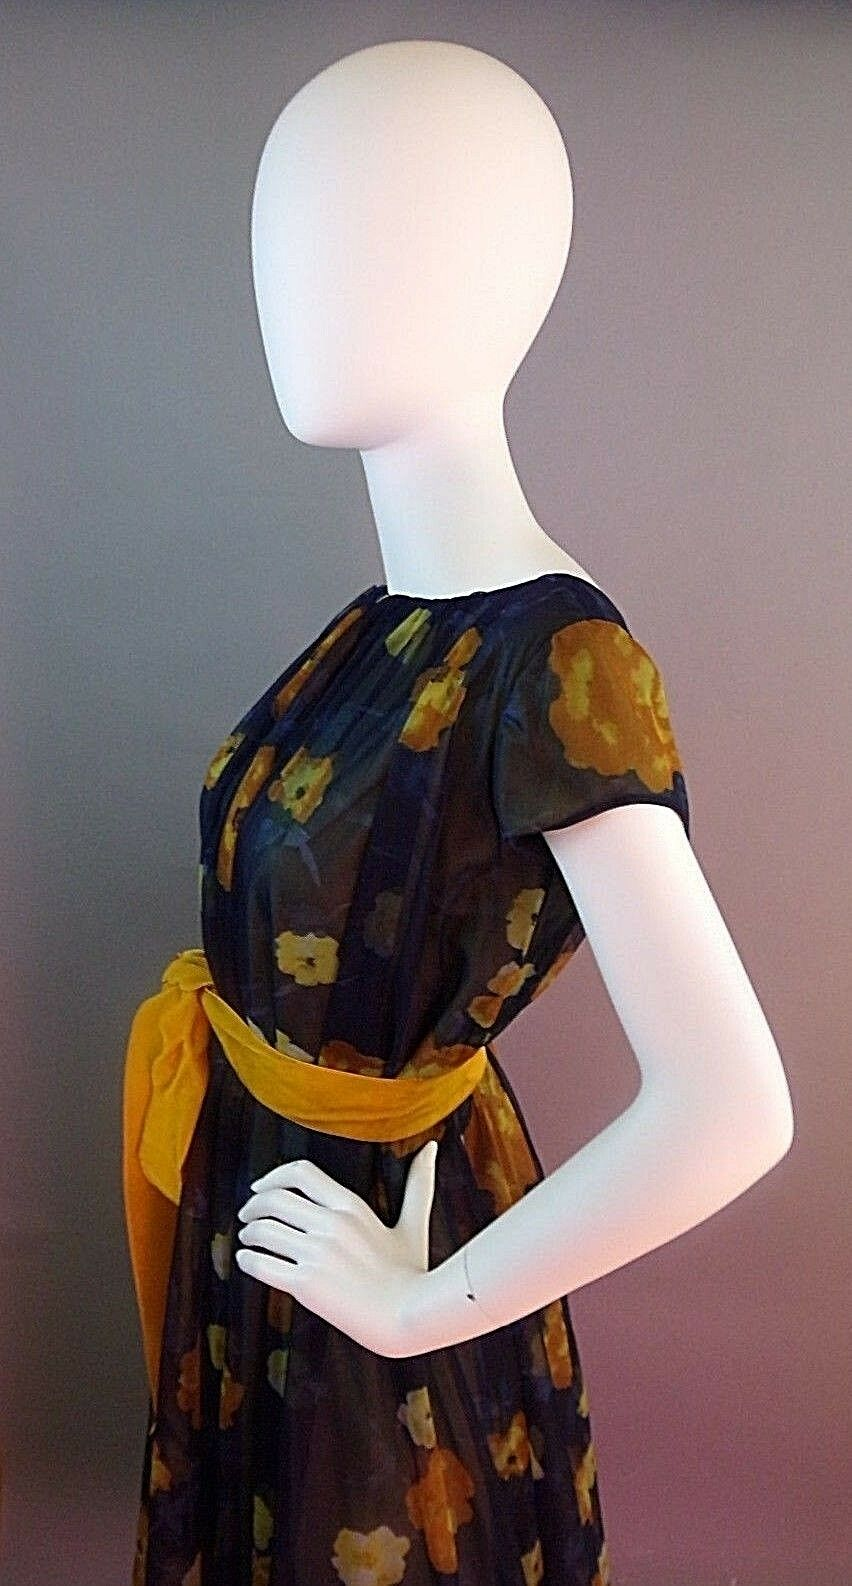 VINTAGE LUCIE ANN BEVERLY HILLS 1950s NIGHTGOWN - image 10